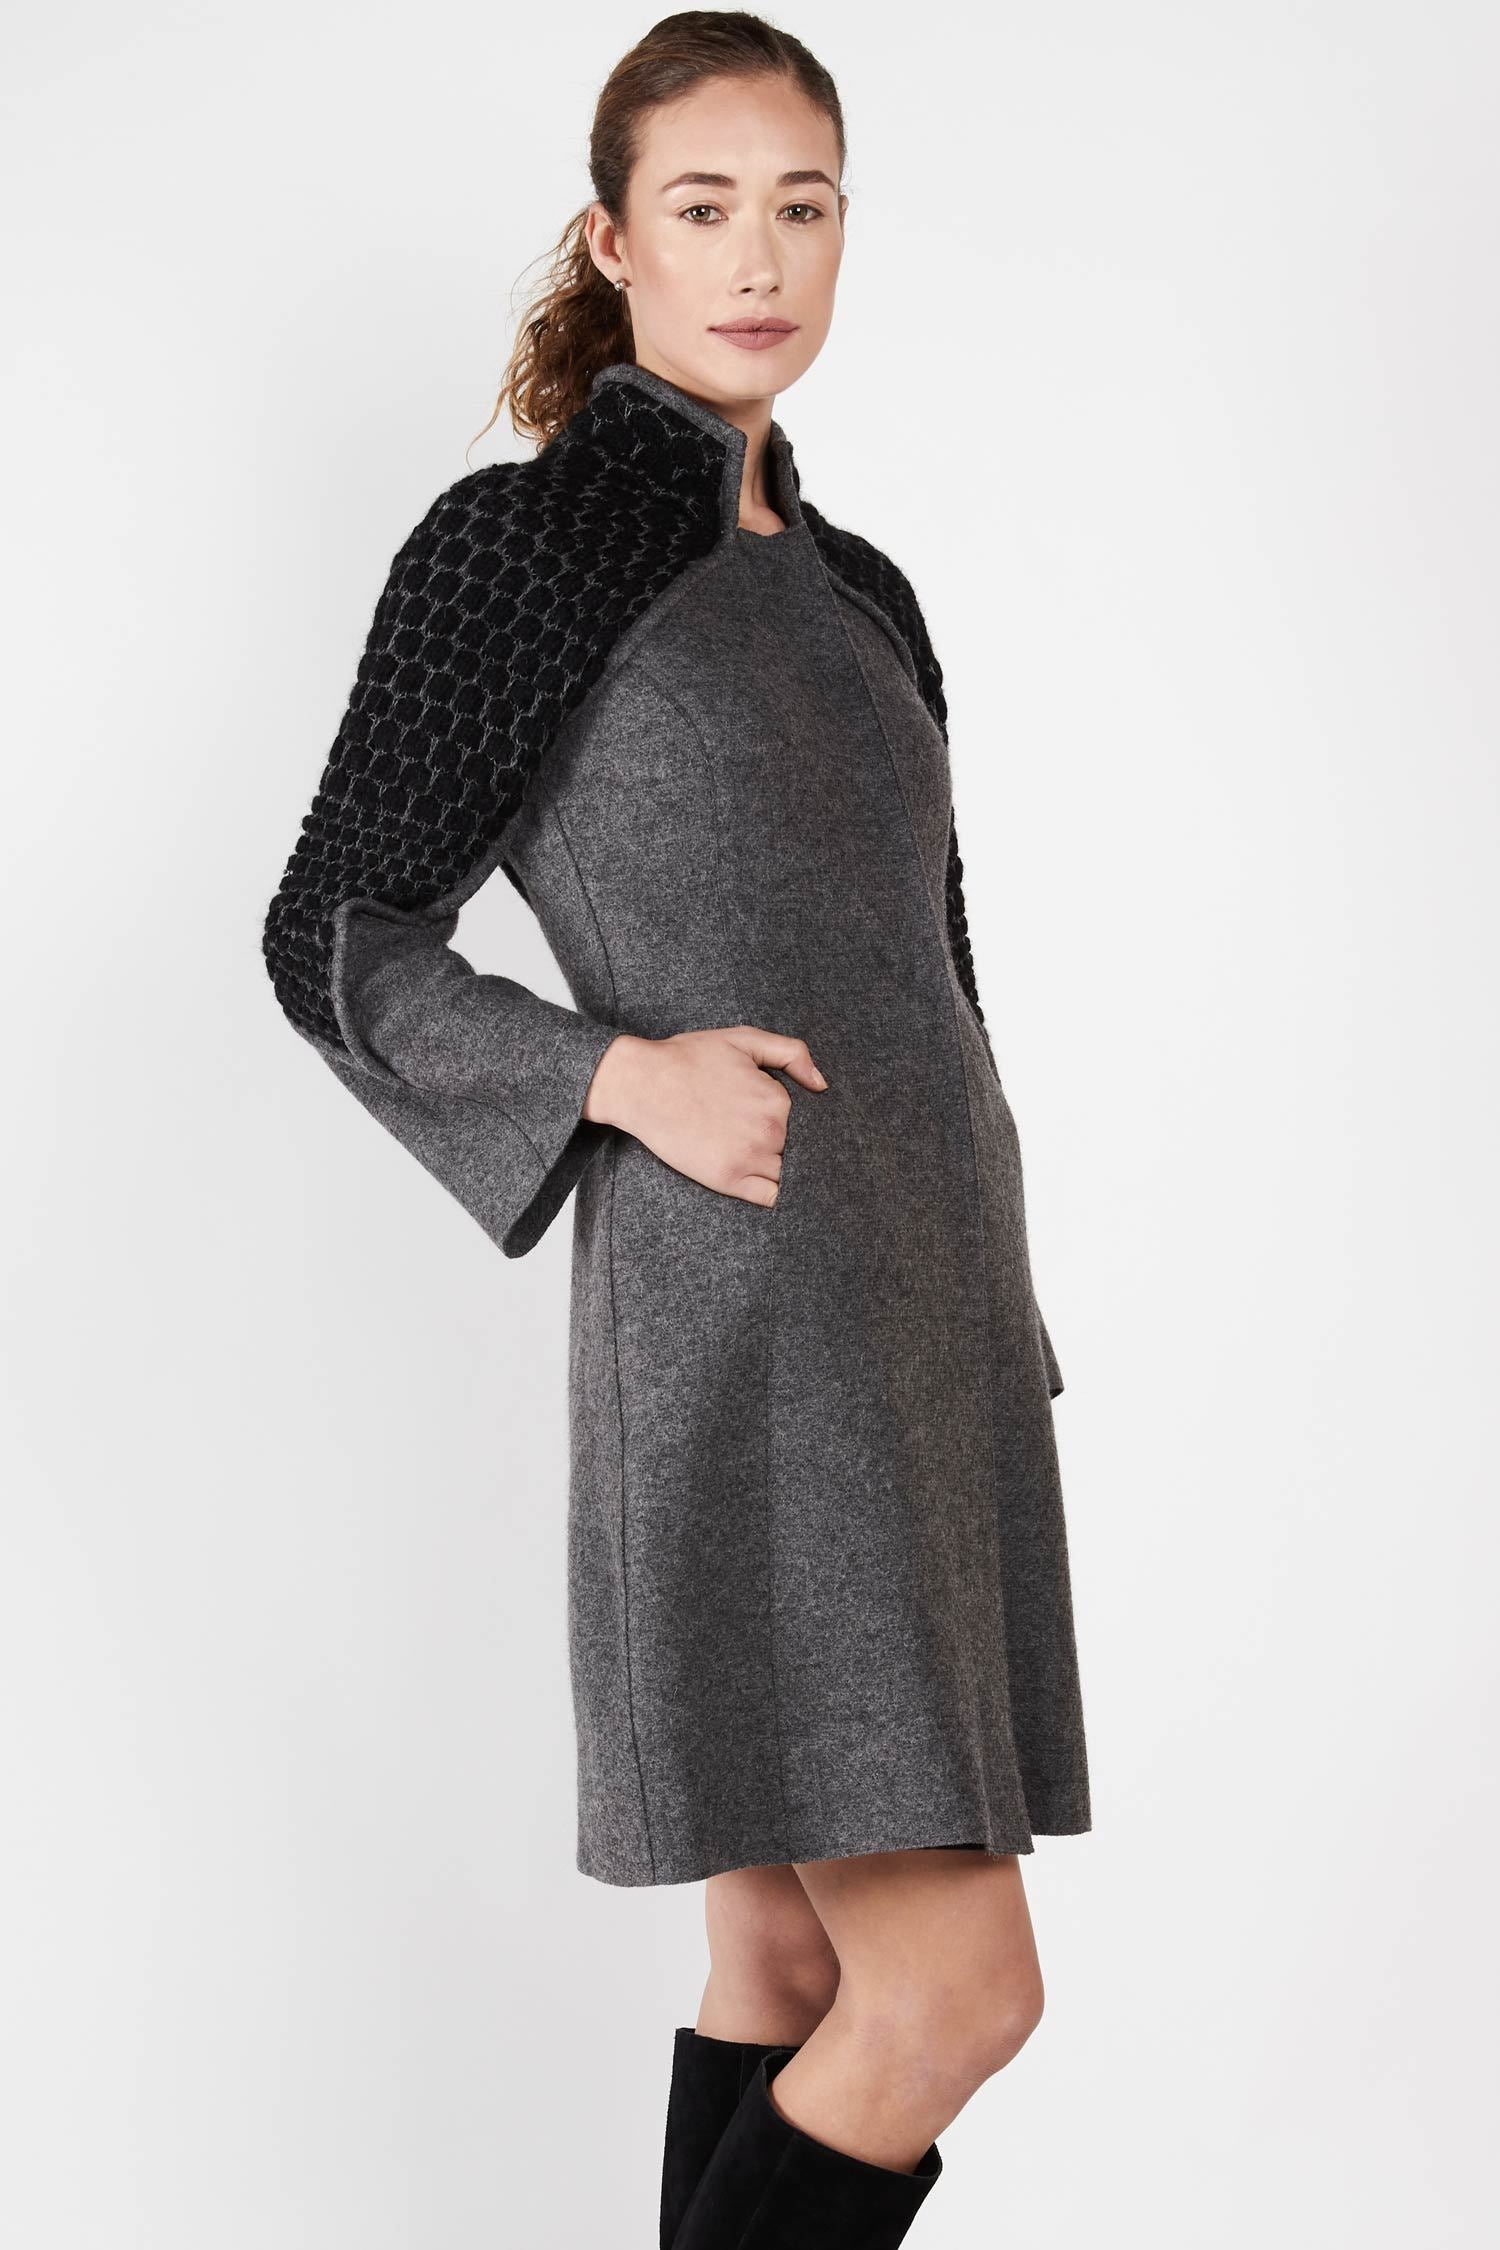 Womens Knit and Boiled Wool Alpaca Coat | Gray Black